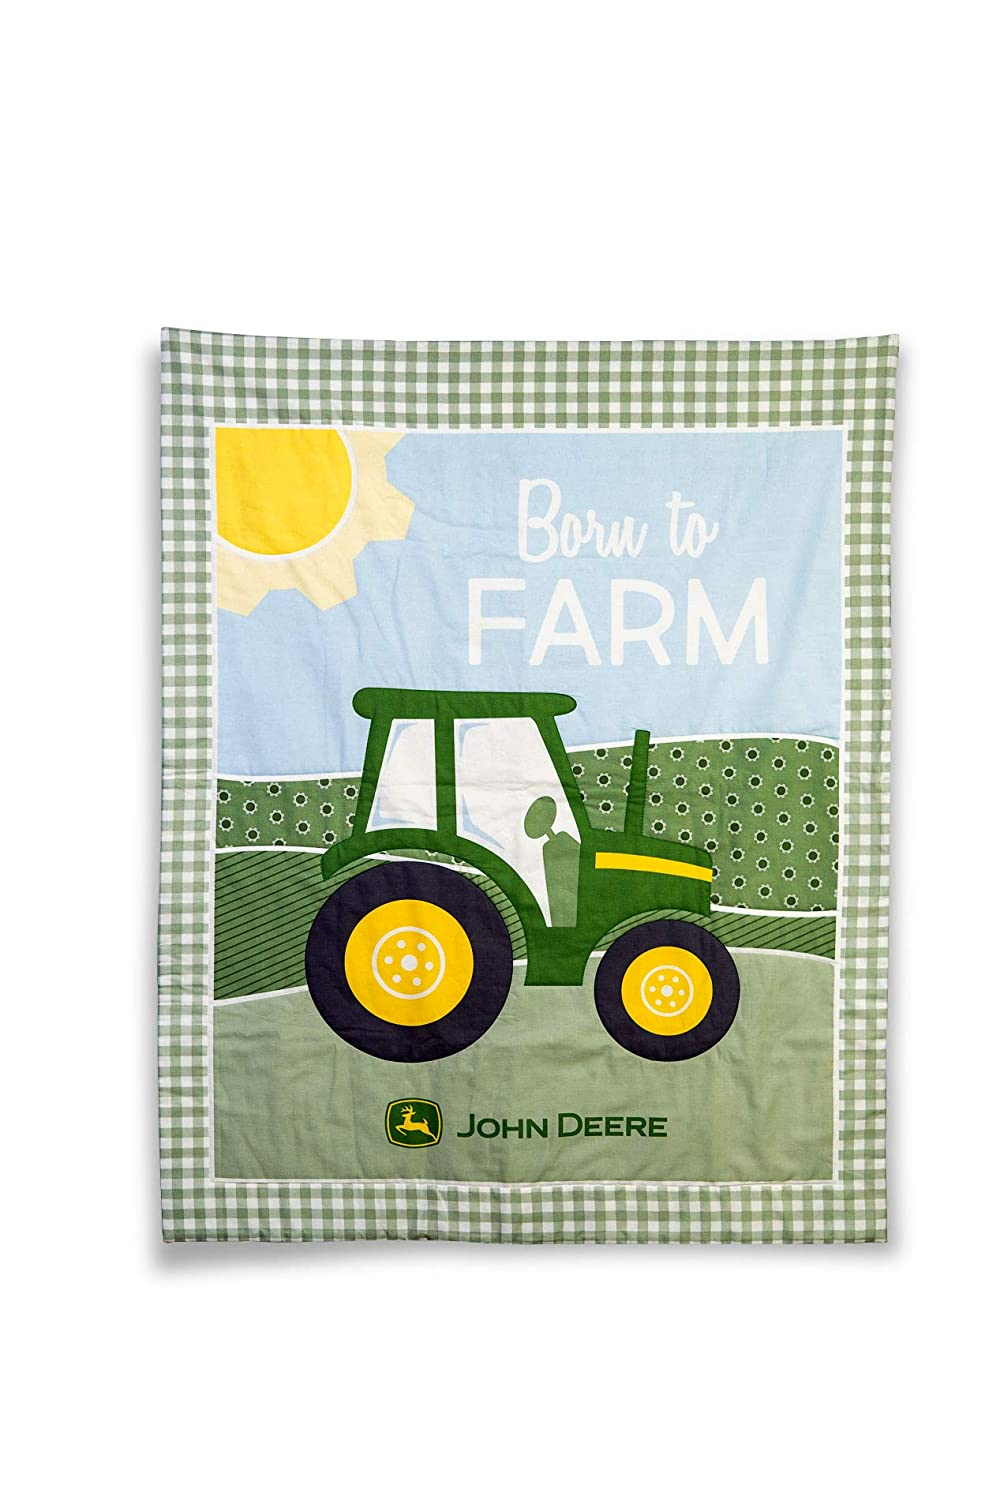 John Deere Tractor Baby Quilt, Born to Farm, Crib Size J&D Productions Inc.